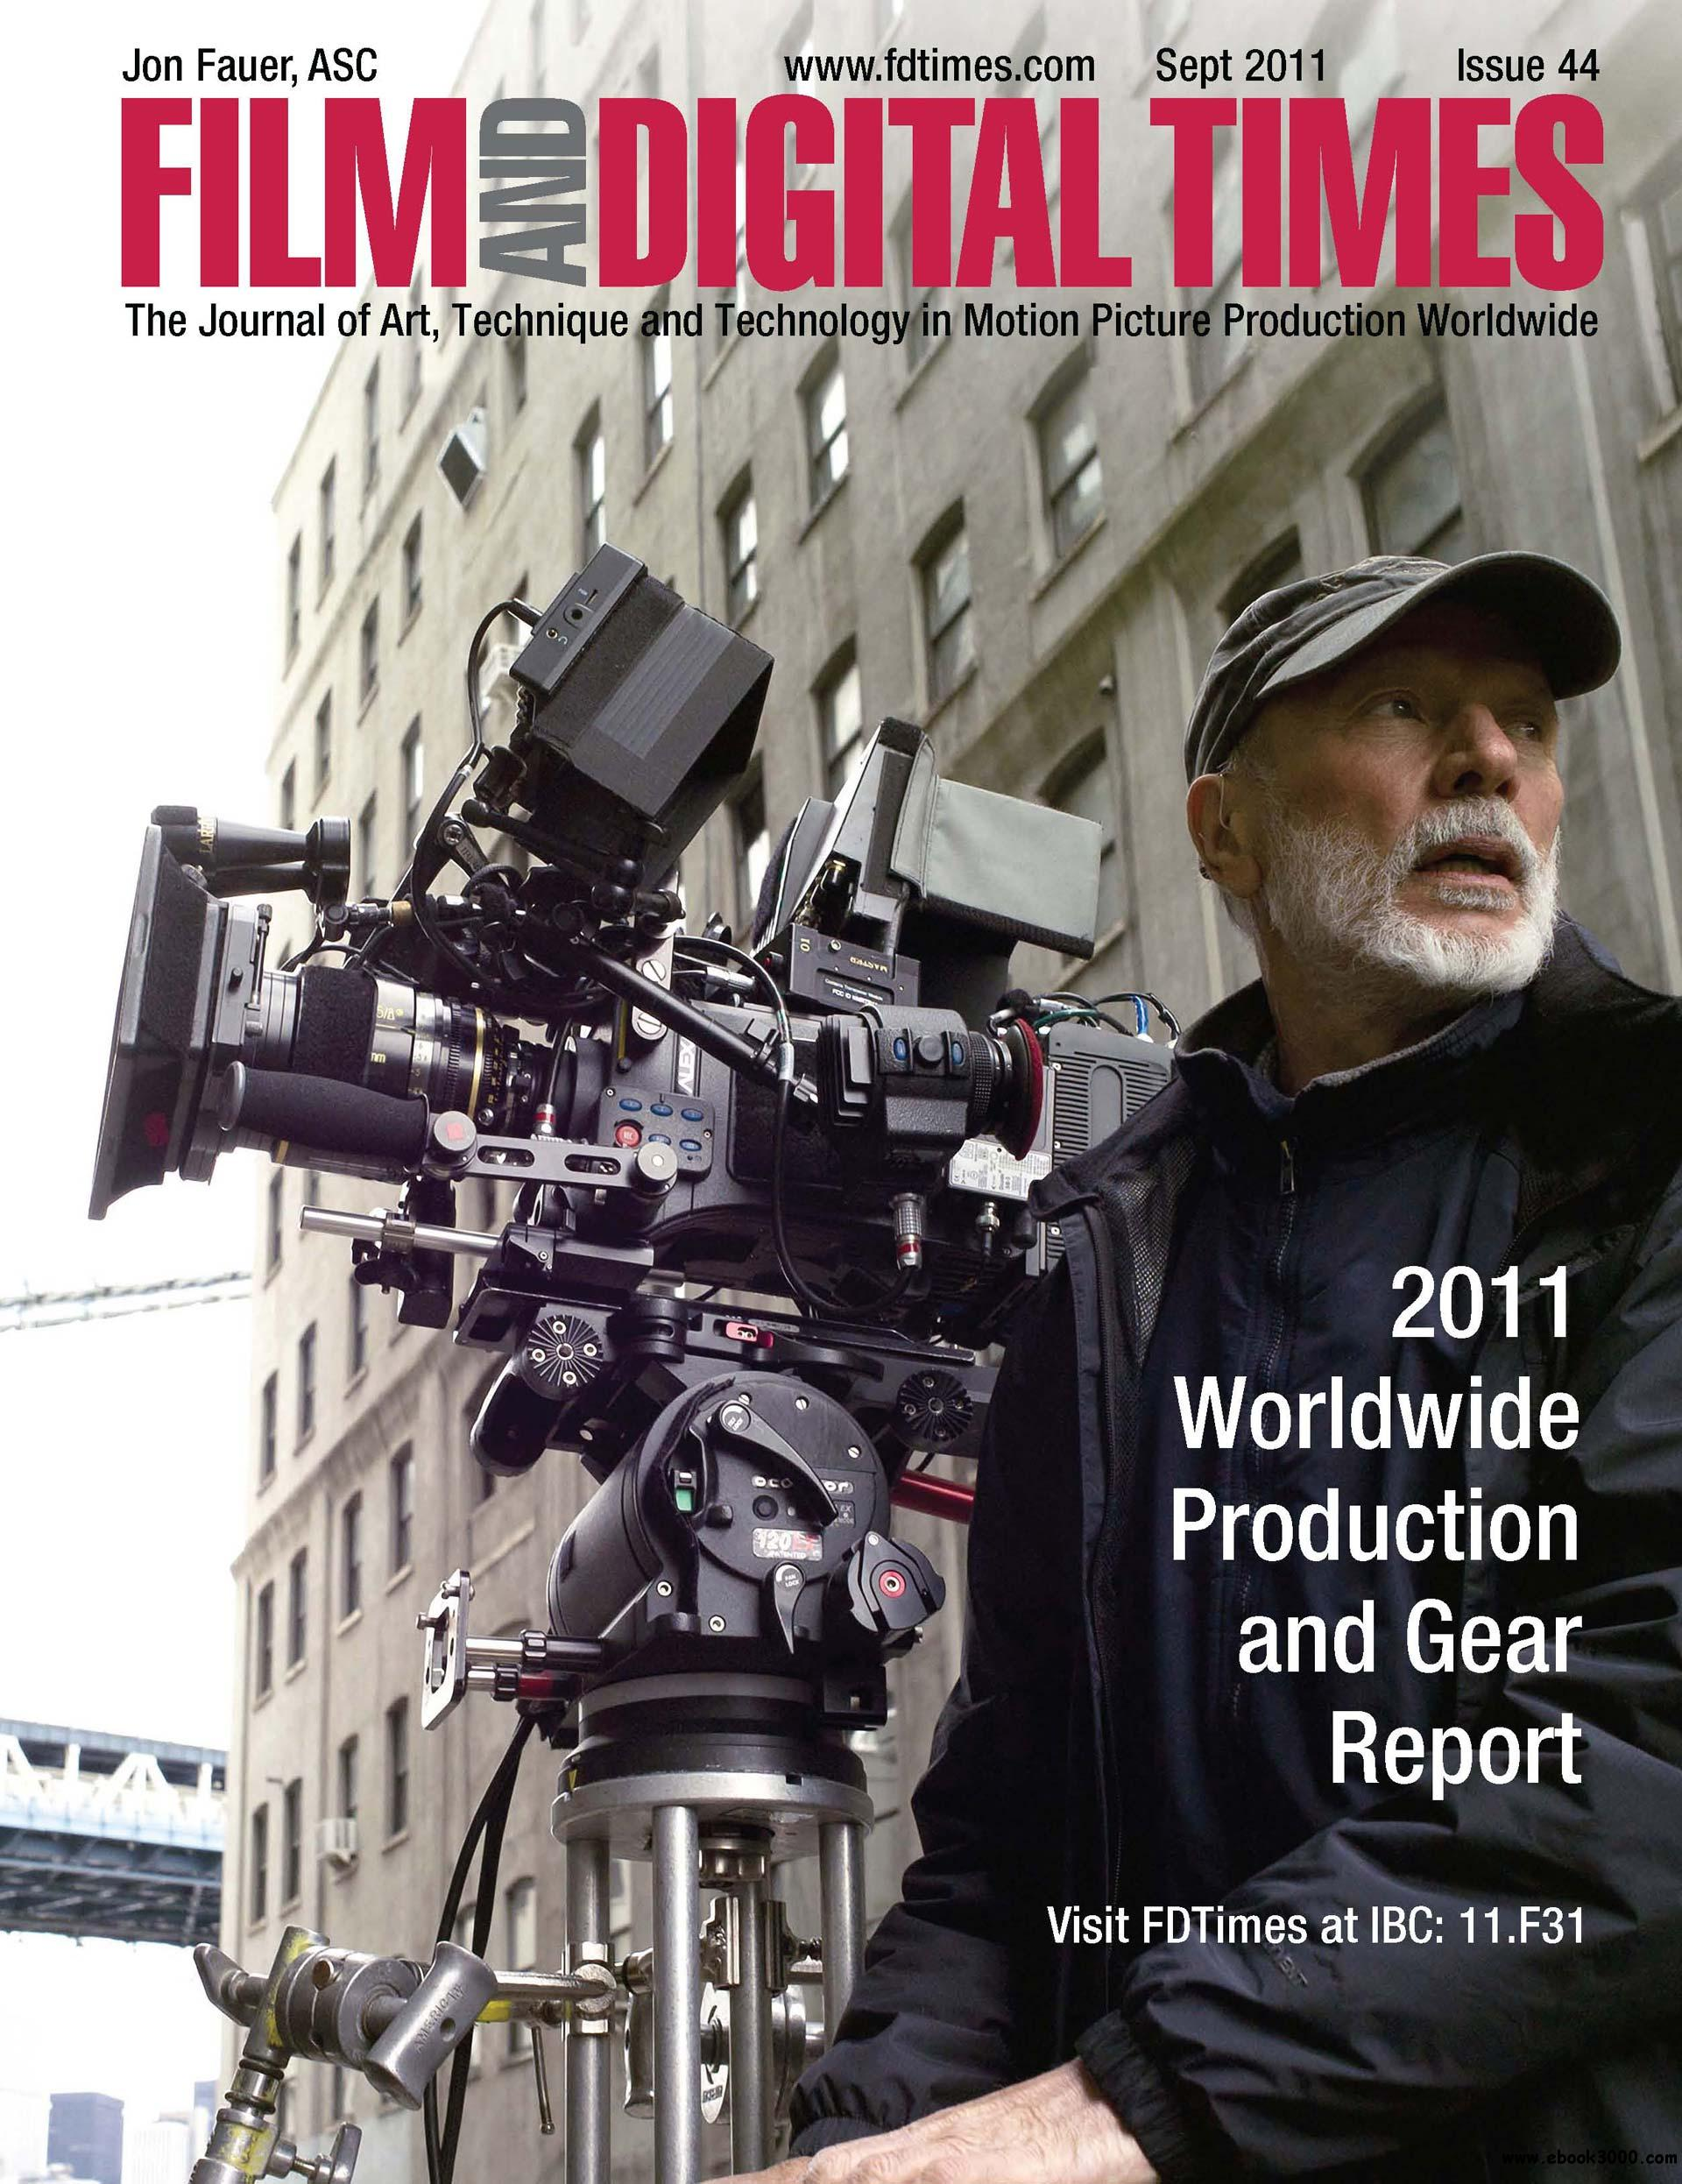 Film and Digital Times ISSUE 44 - September 2011 free download